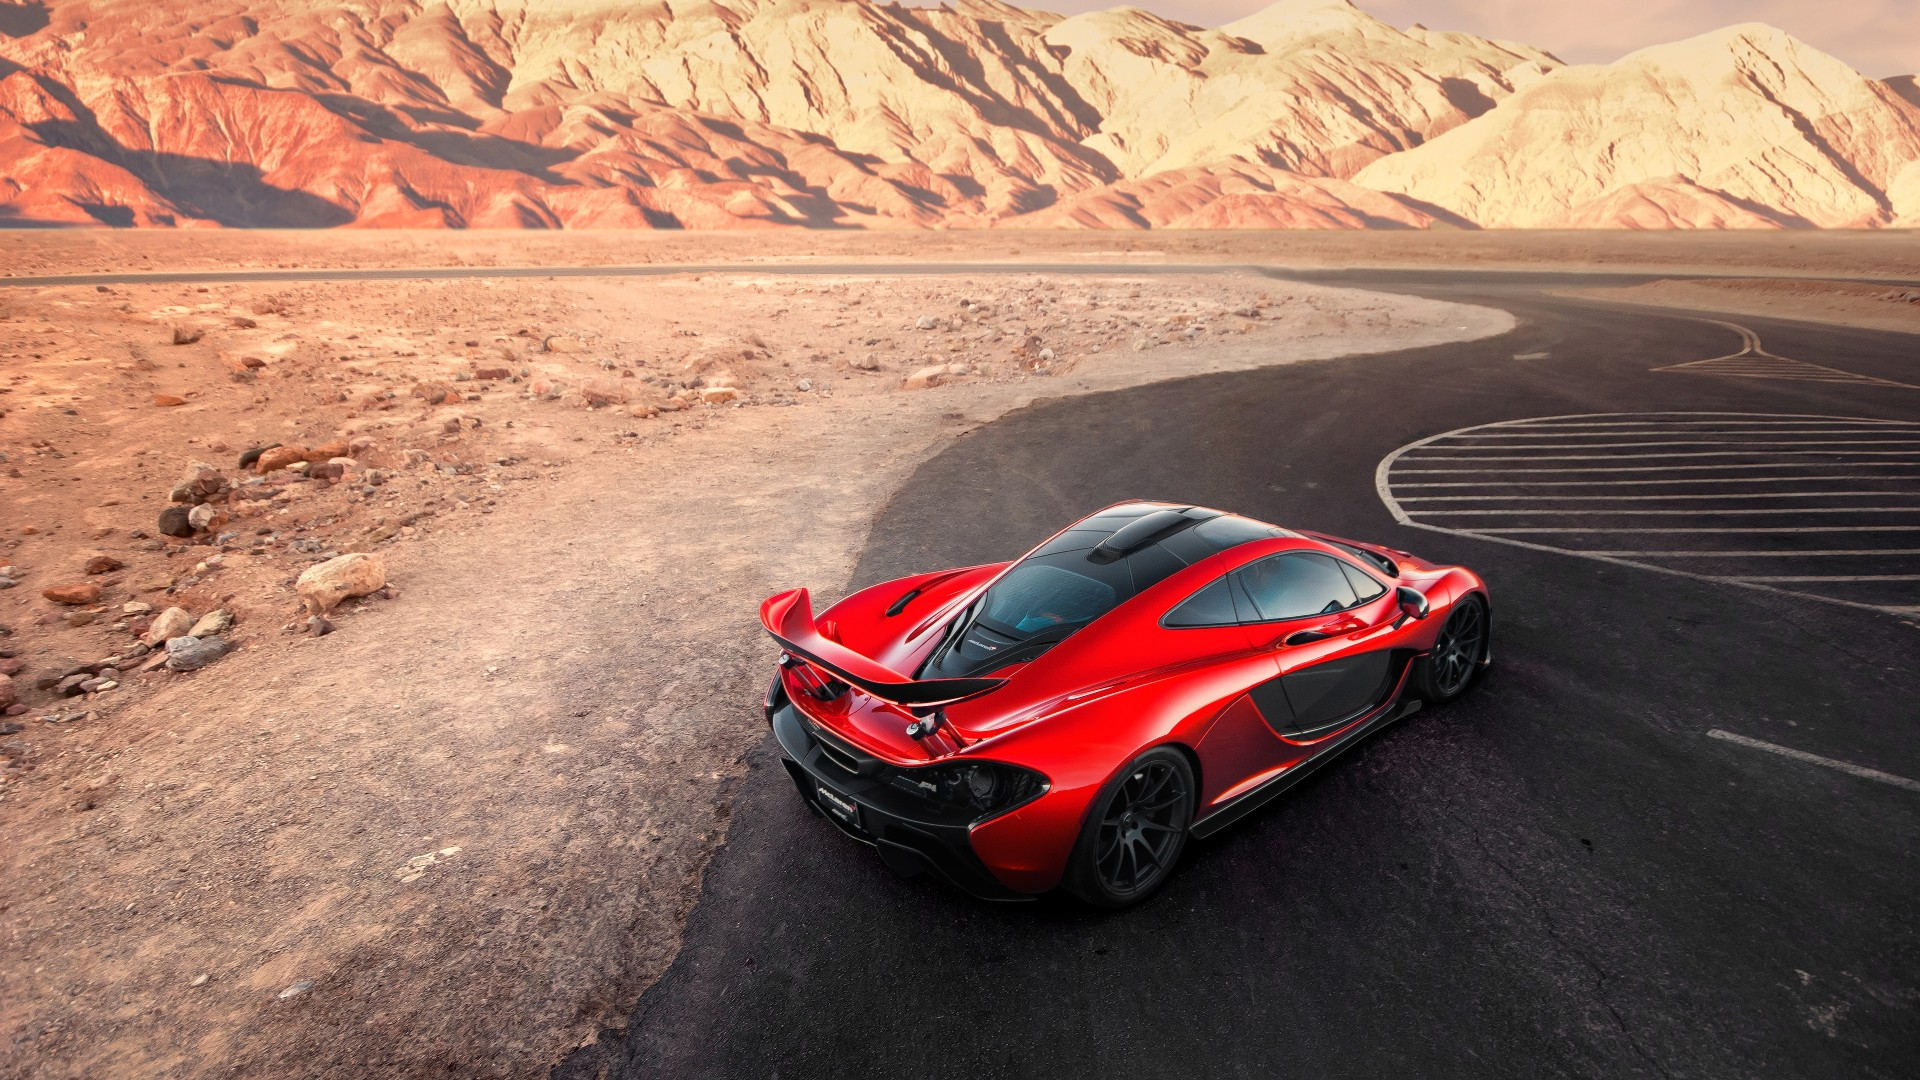 Ferrari Car Wallpaper For Desktop Mclaren P1 Death Valley Wallpaper Hd Car Wallpapers Id